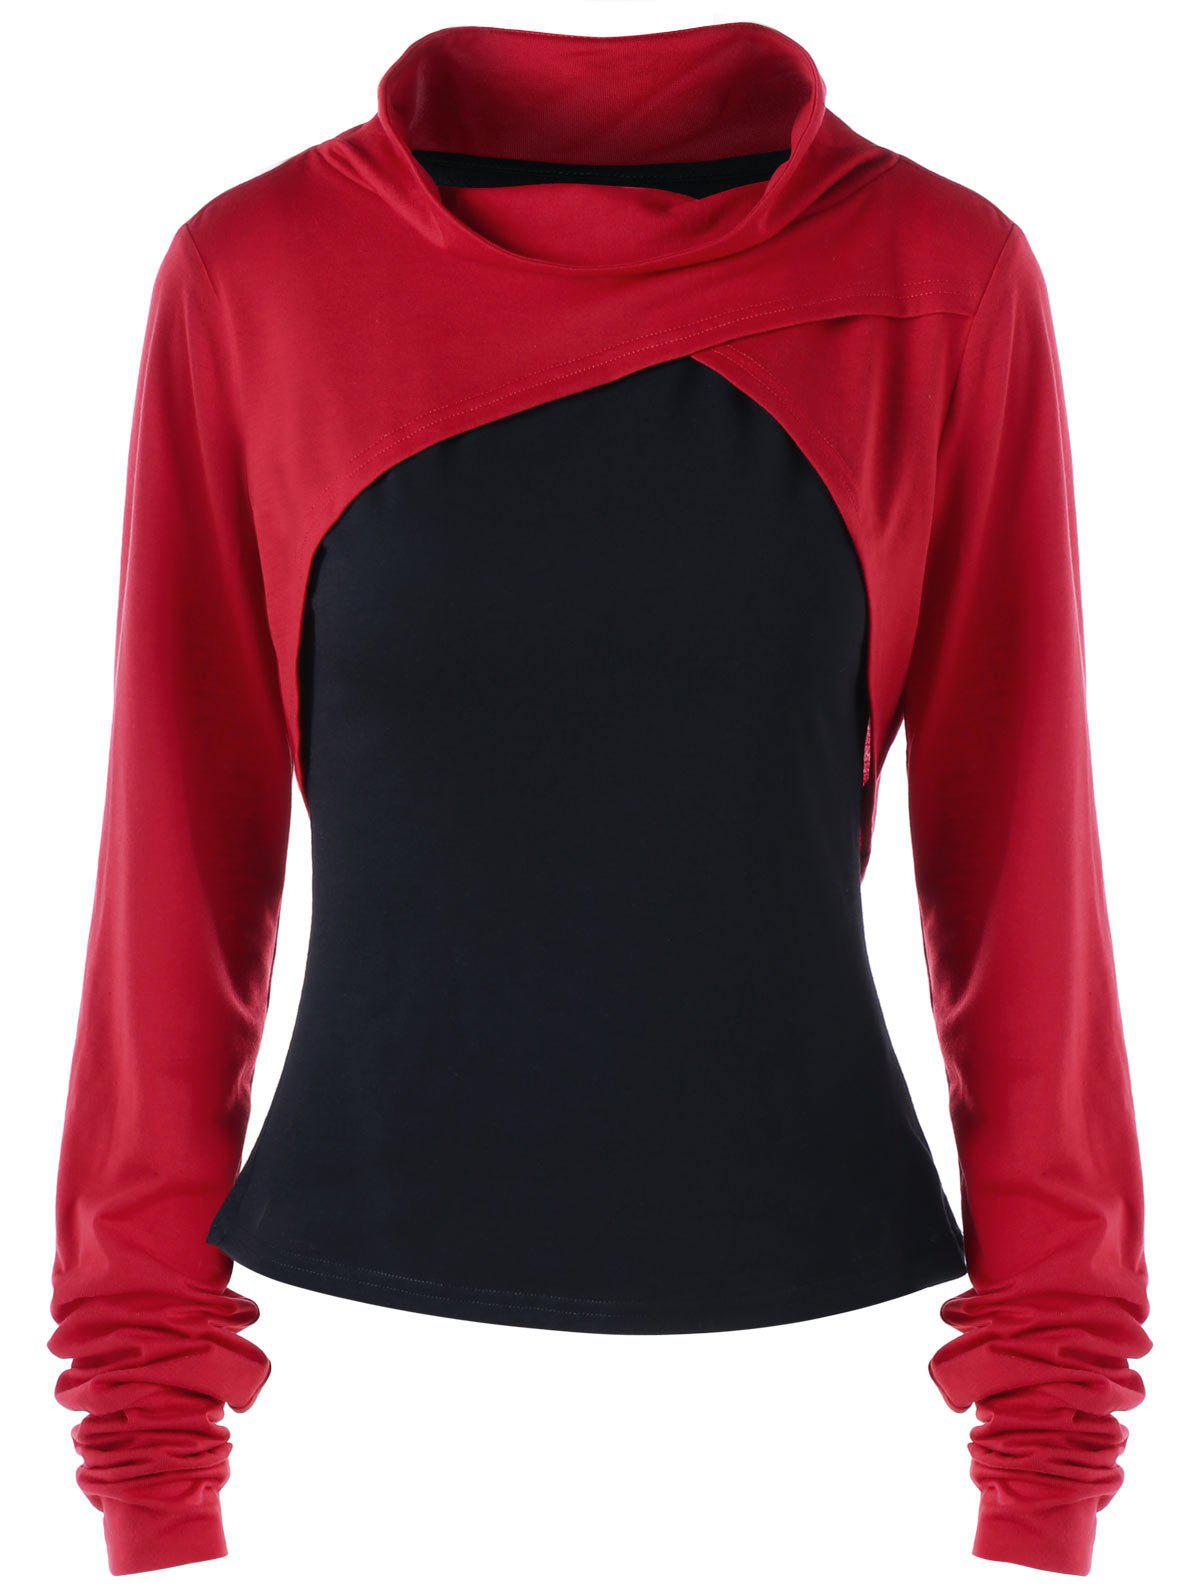 Plus Size Two Tone Thumb Hole Top - RED/BLACK 5XL